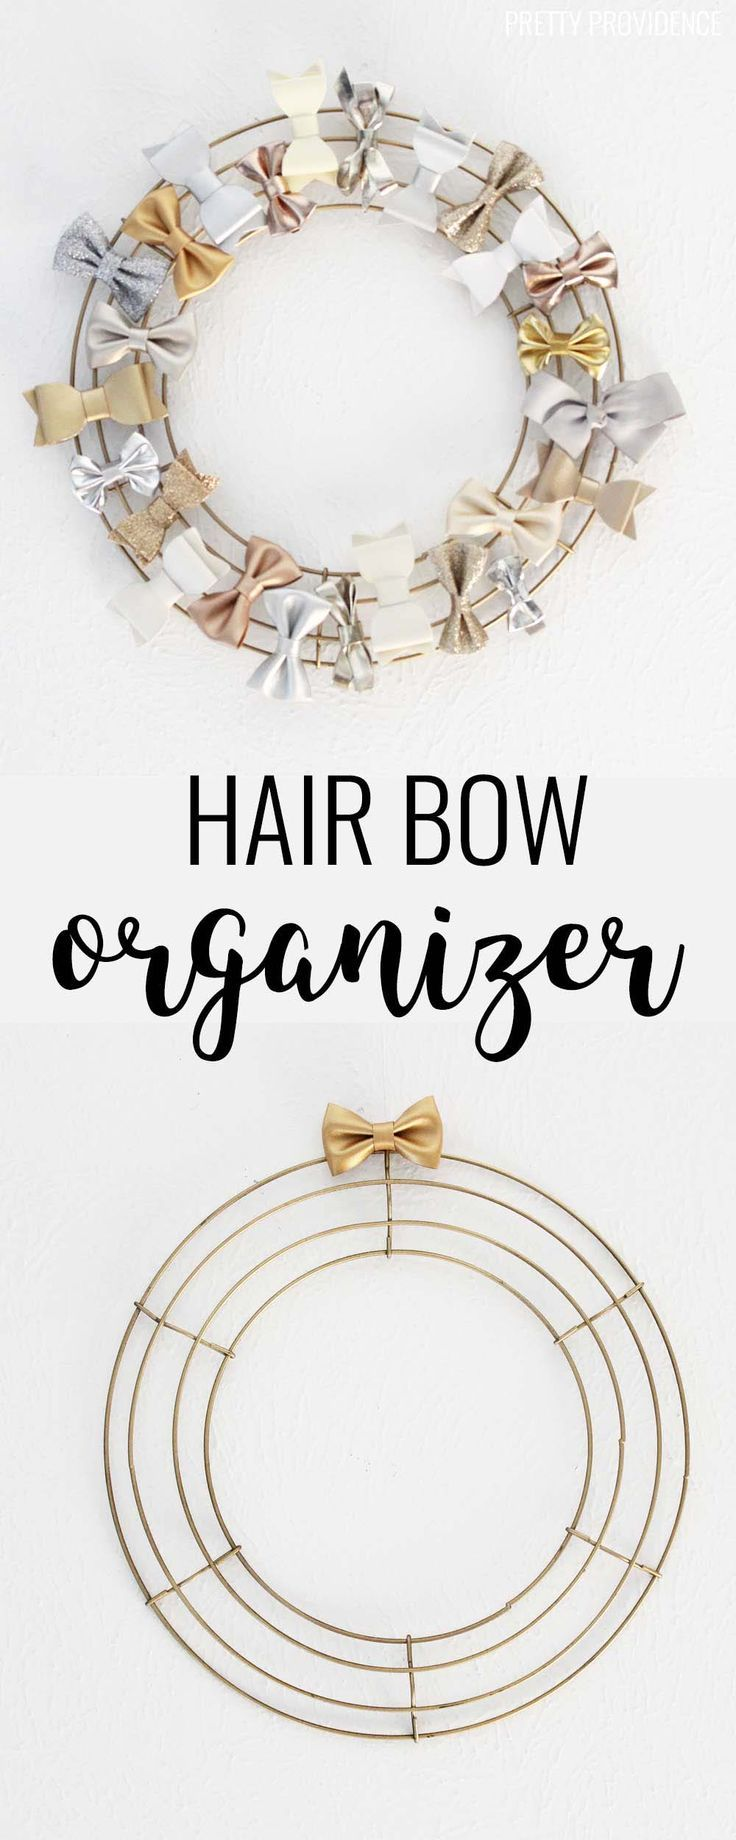 This is a great way to organize girls' bows! All you need is a wreath form and some spray paint!